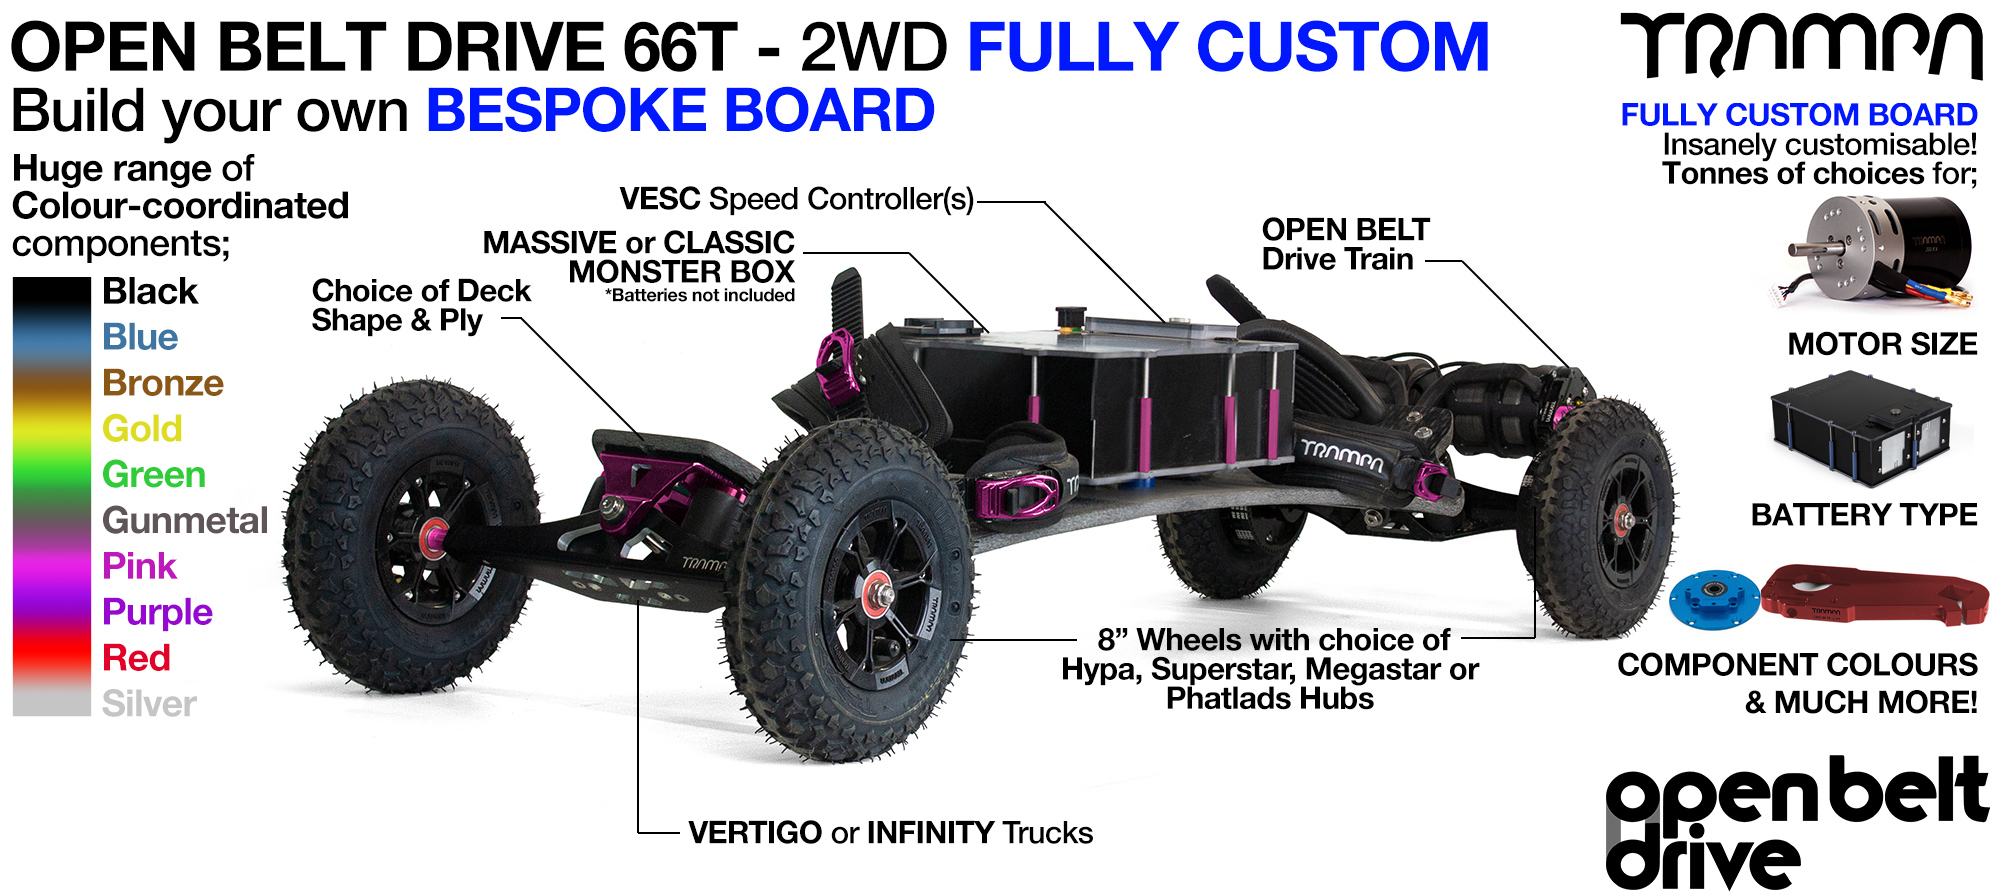 OPEN BELT DRIVE Electric Mountainboard with MONSTER Box with 8 Inch Wheels - CUSTOM